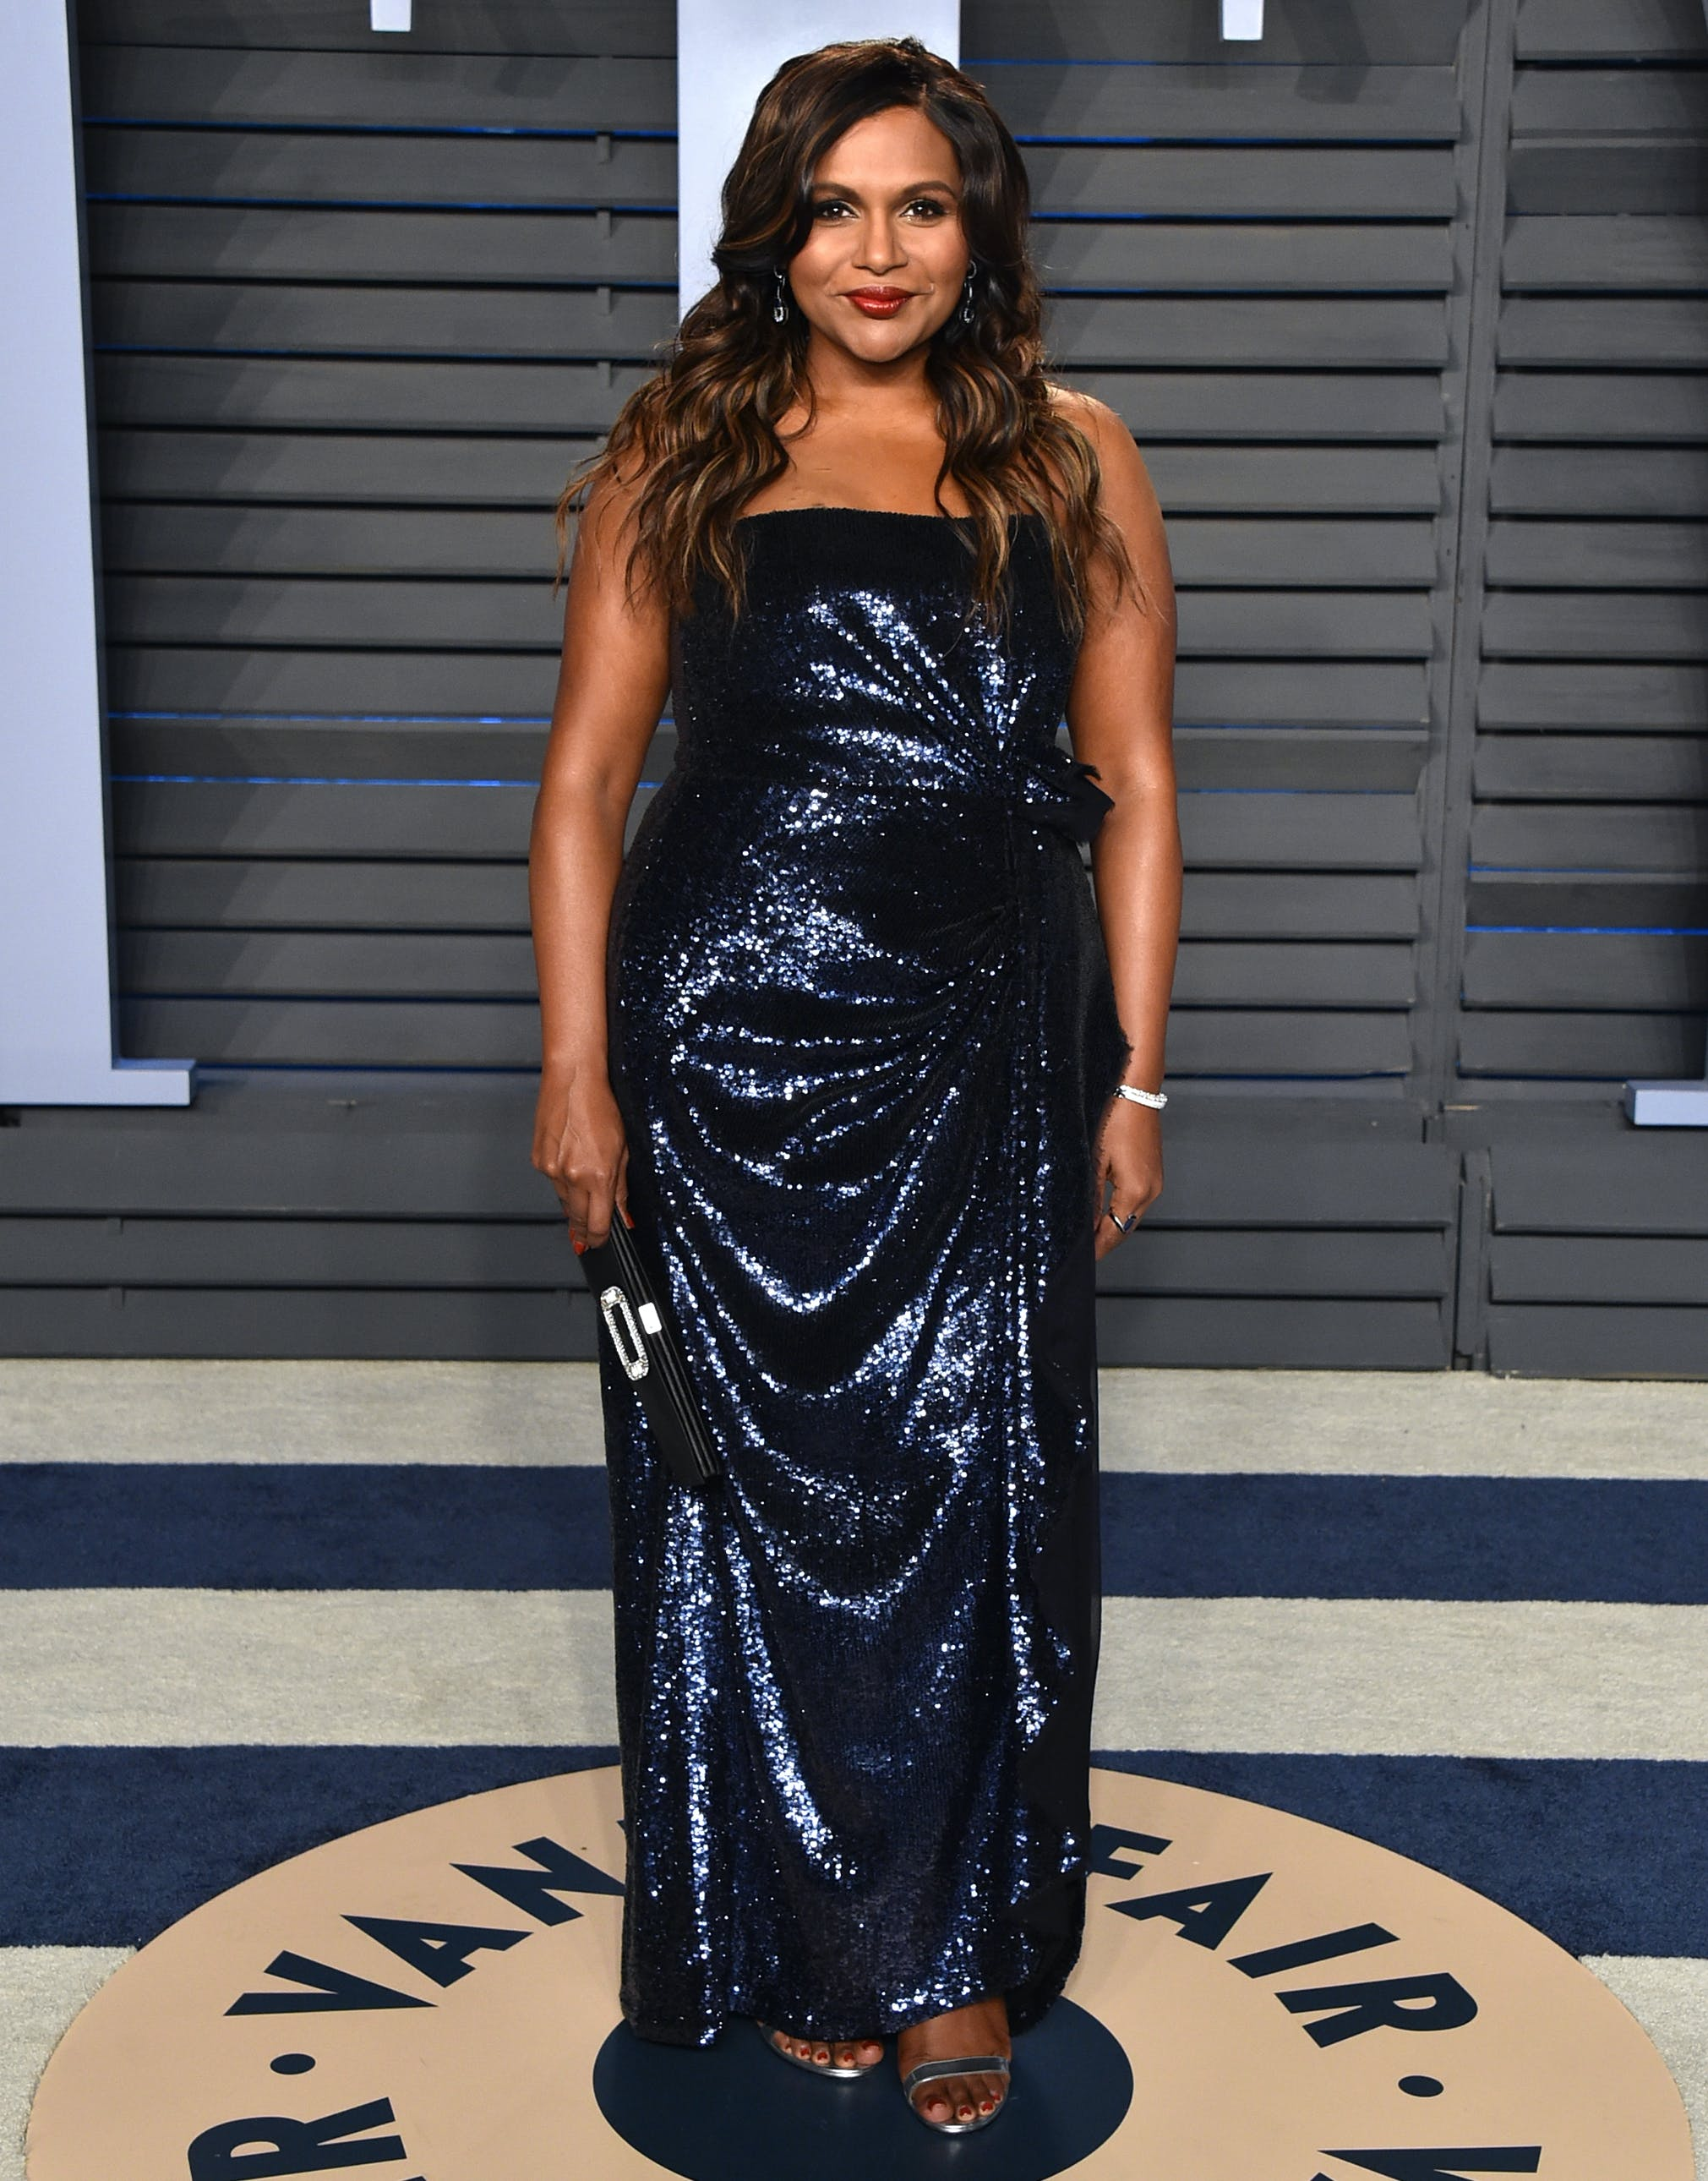 Mindy Kaling at the 2018 Oscars